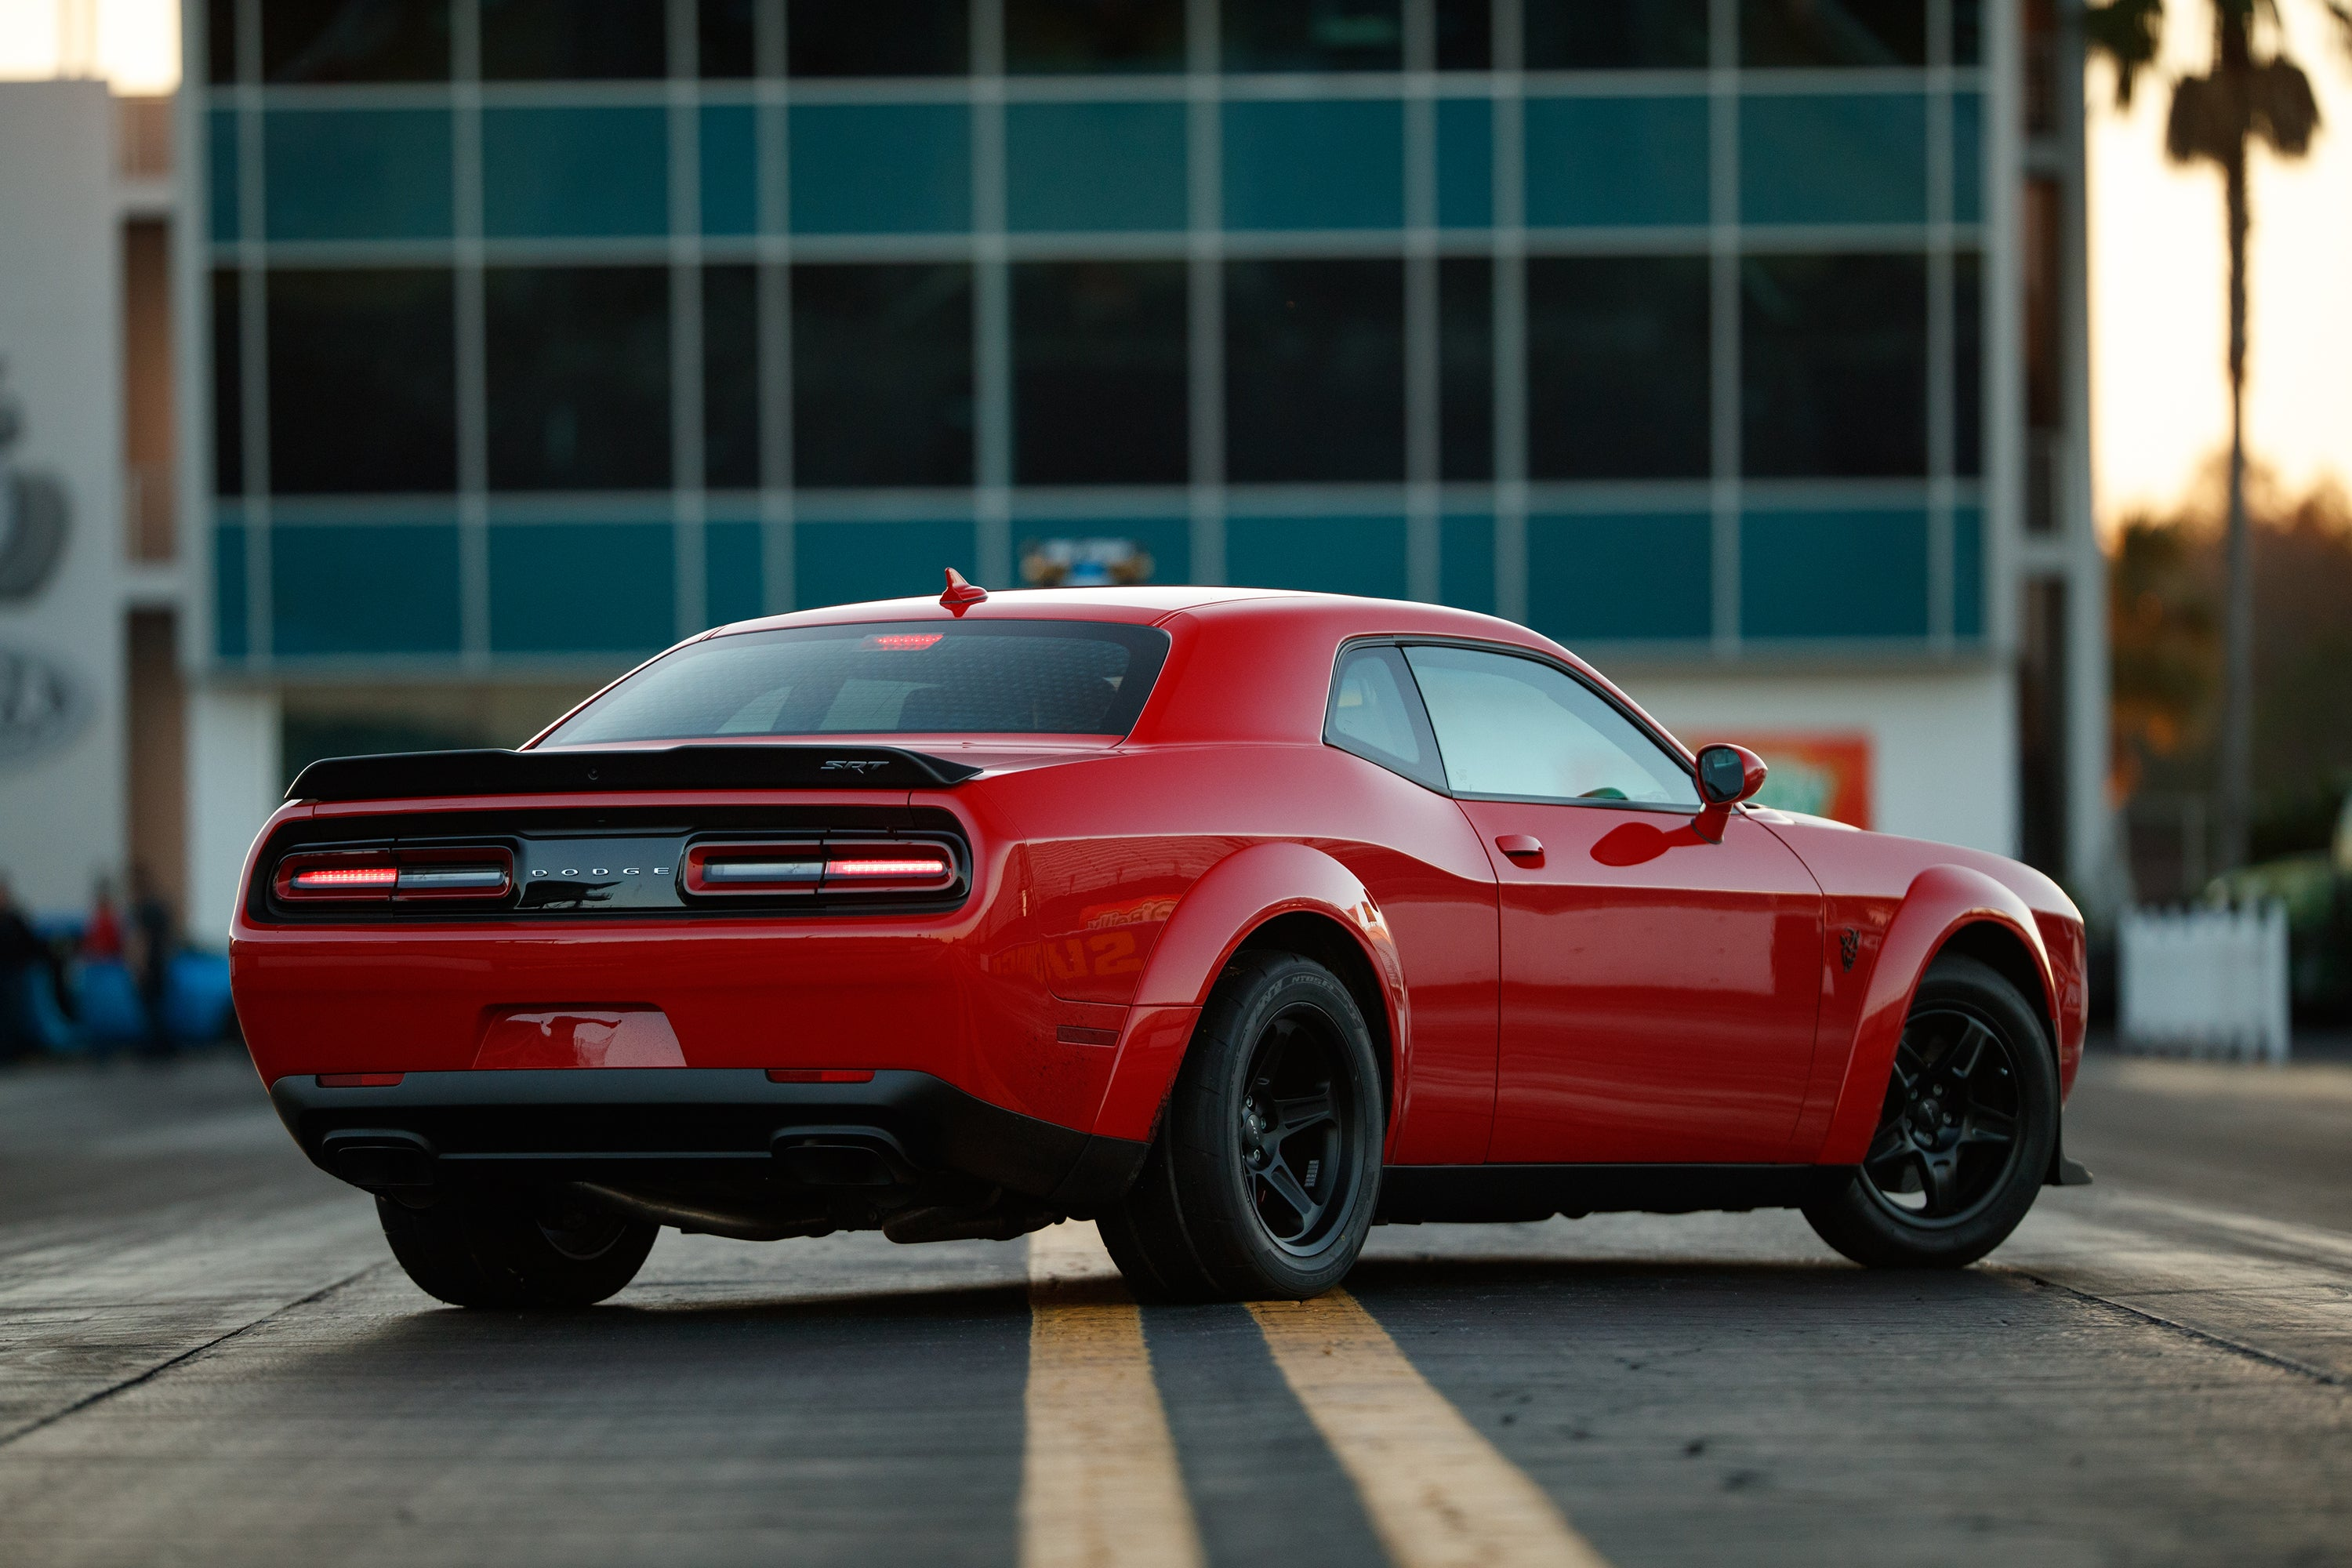 Why Fiat Chrysler Automobiles Created The Insane 2018 Dodge Challenger Srt Demon The Motley Fool